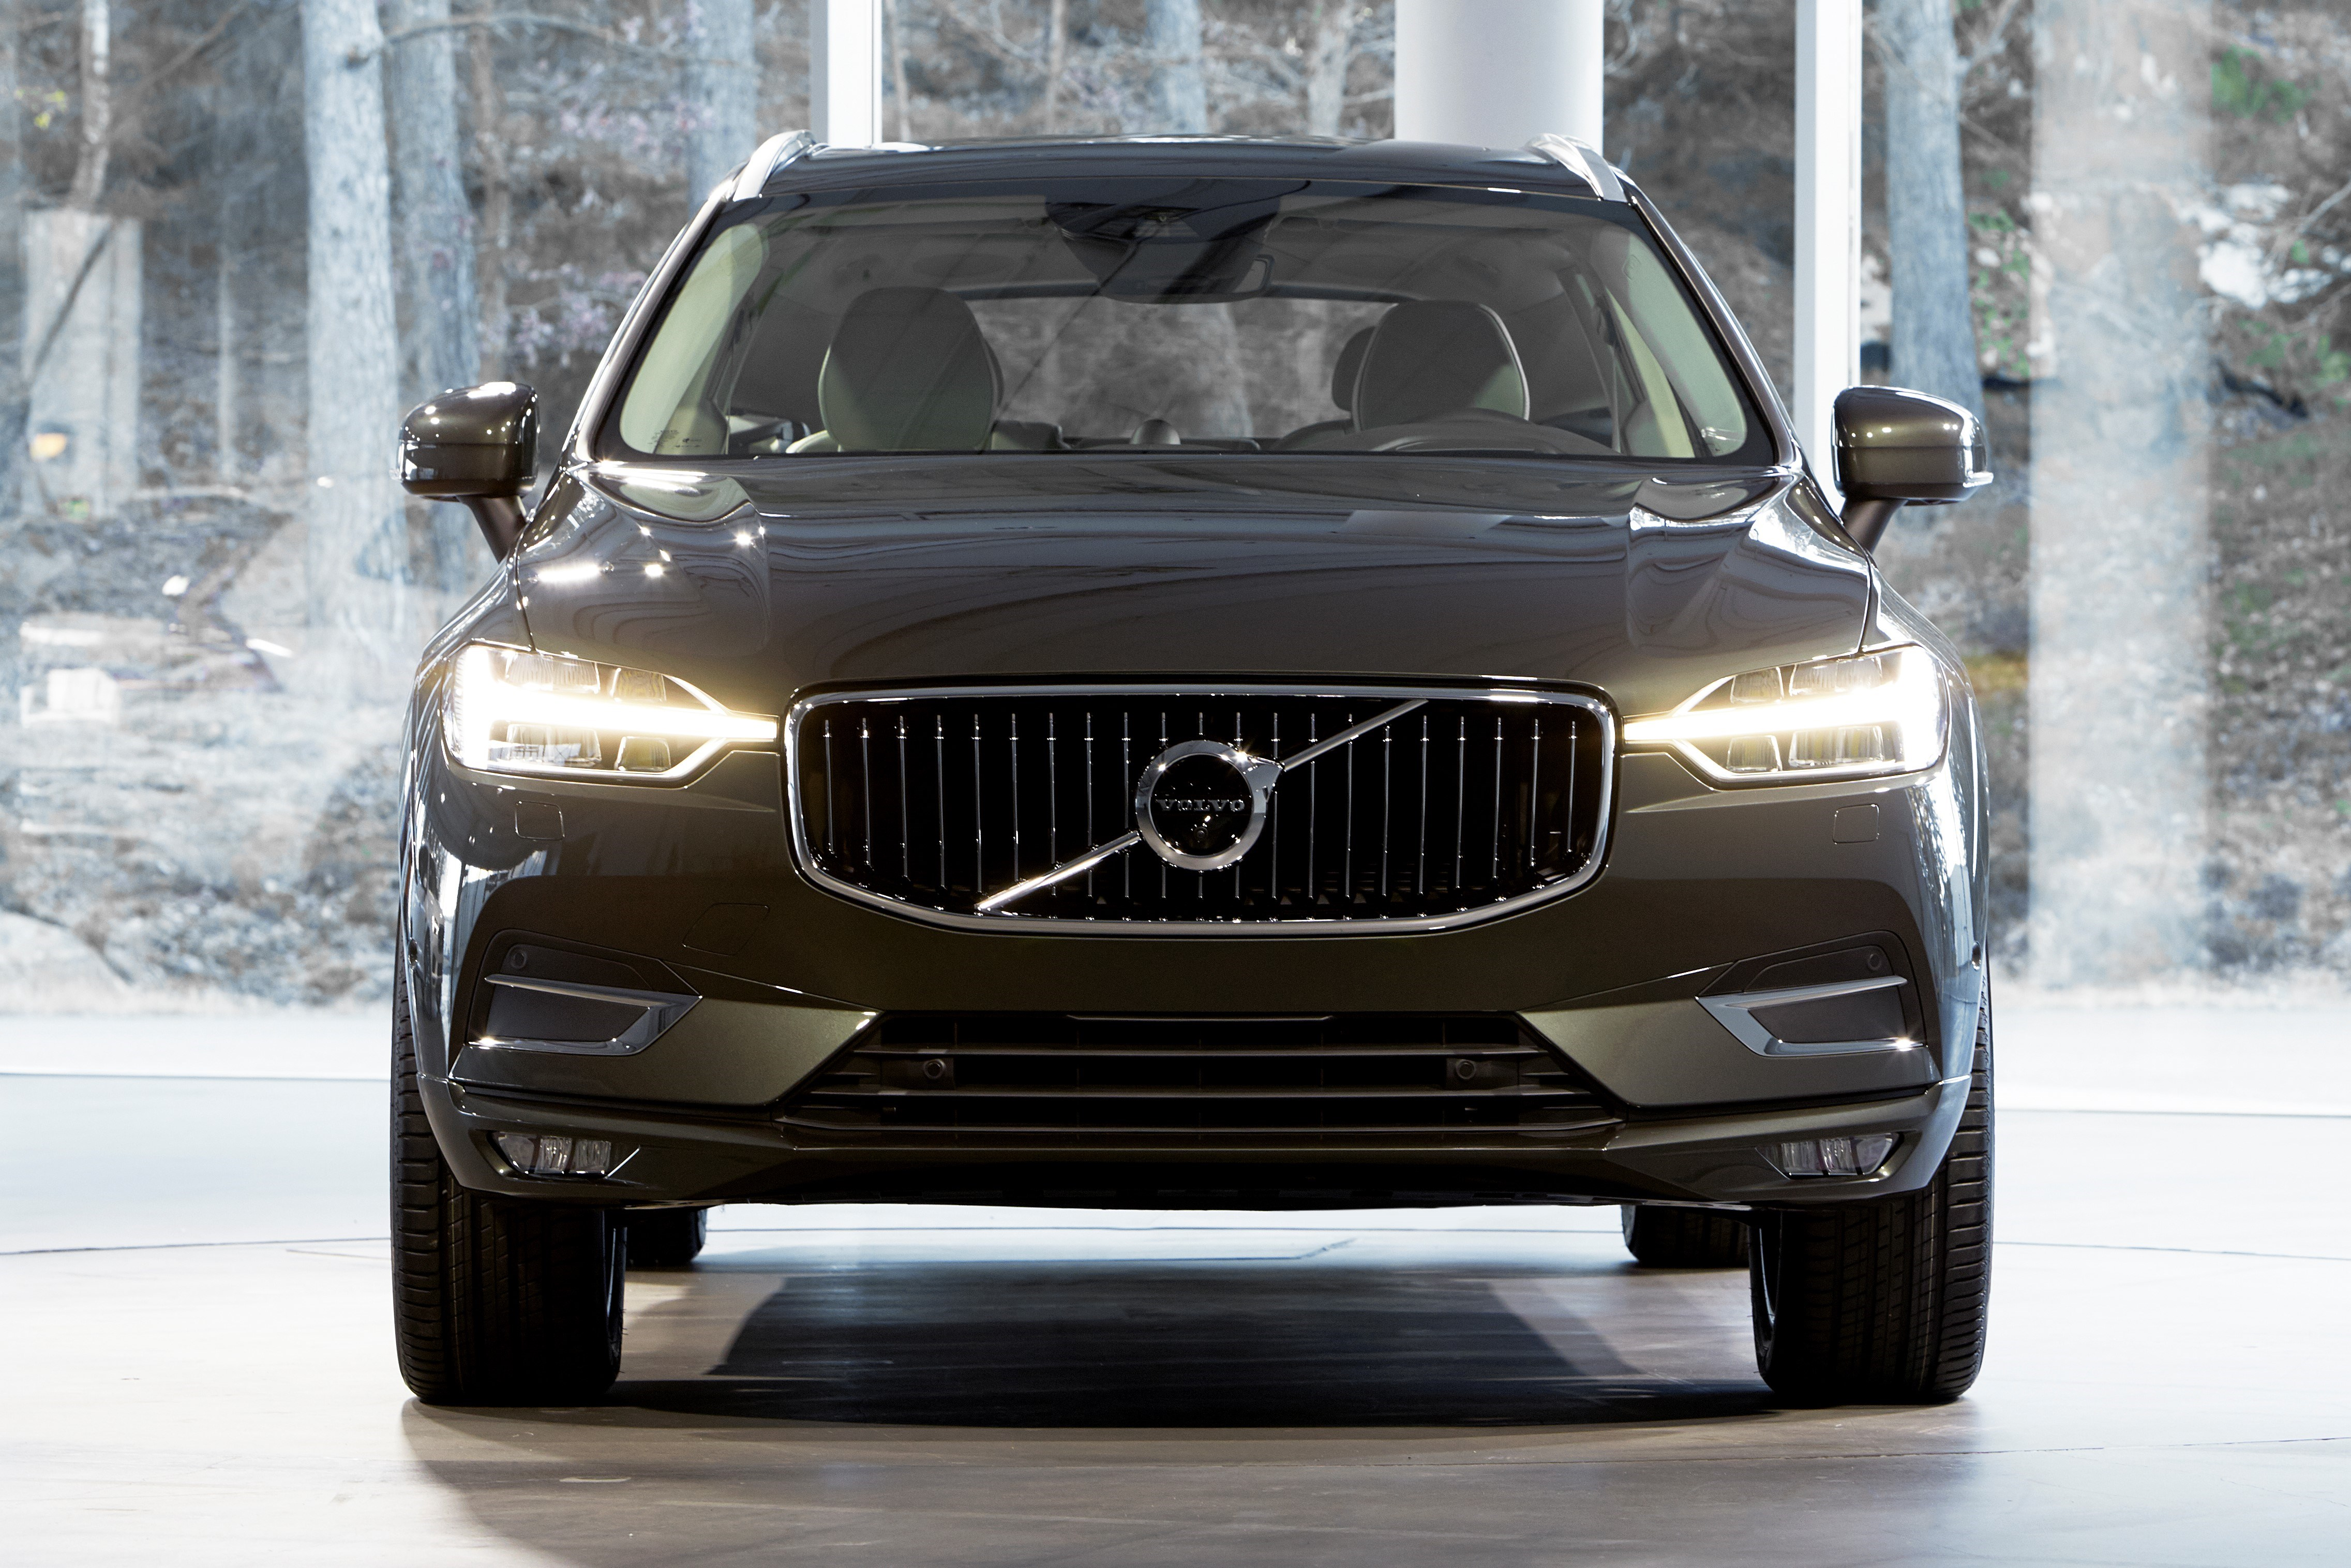 2018 volvo xc60 unveiled 407 hp t8 plug in hybrid image 625853. Black Bedroom Furniture Sets. Home Design Ideas